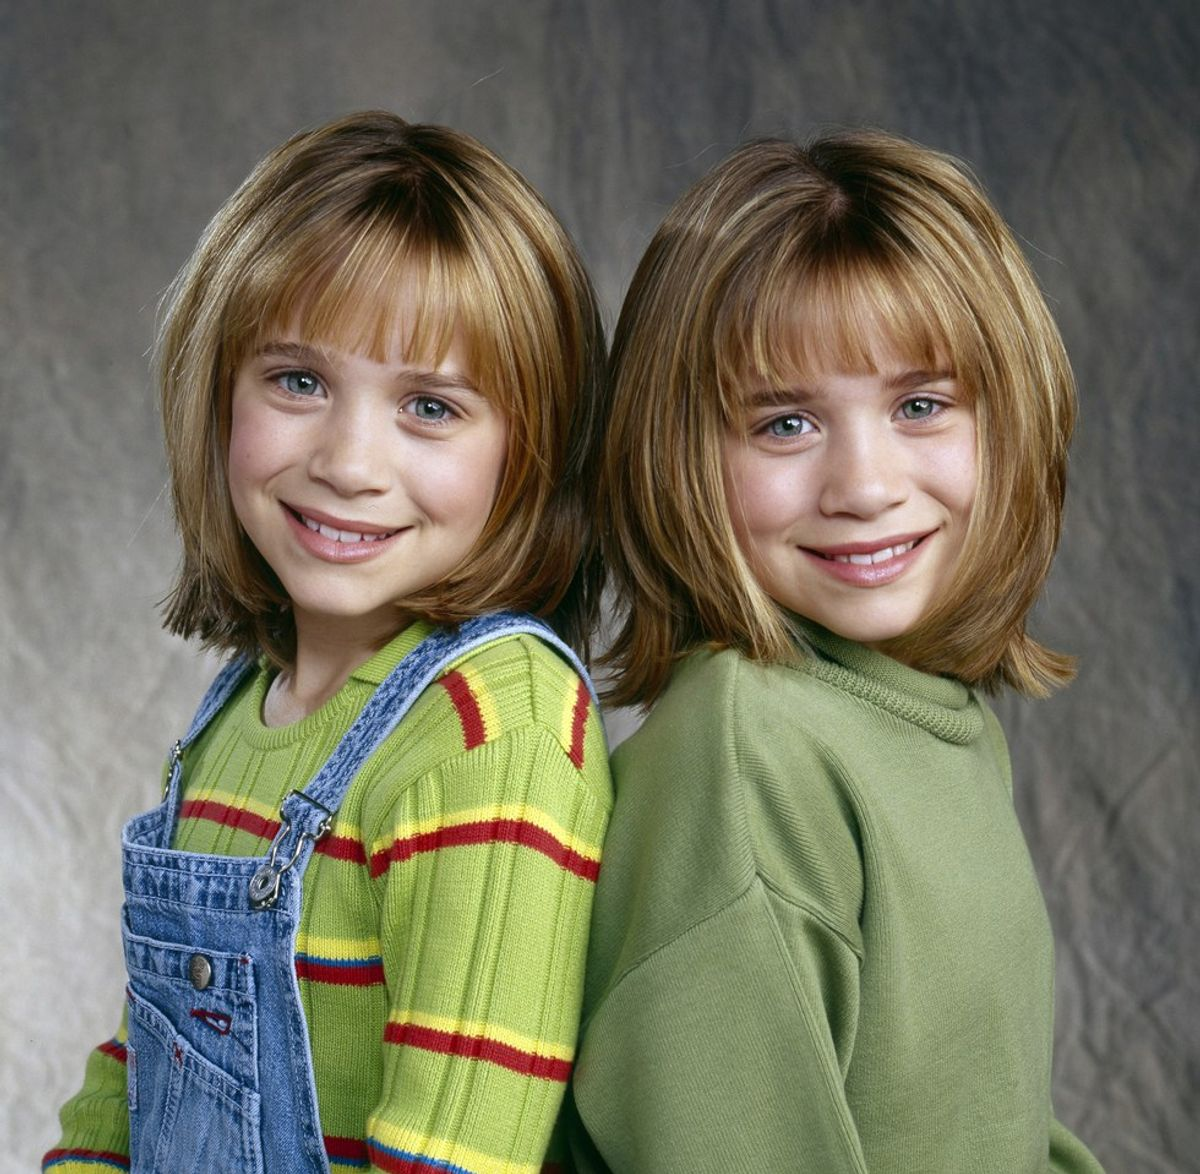 The Mary-Kate And Ashley Olsen Movie Franchise: A Ranking